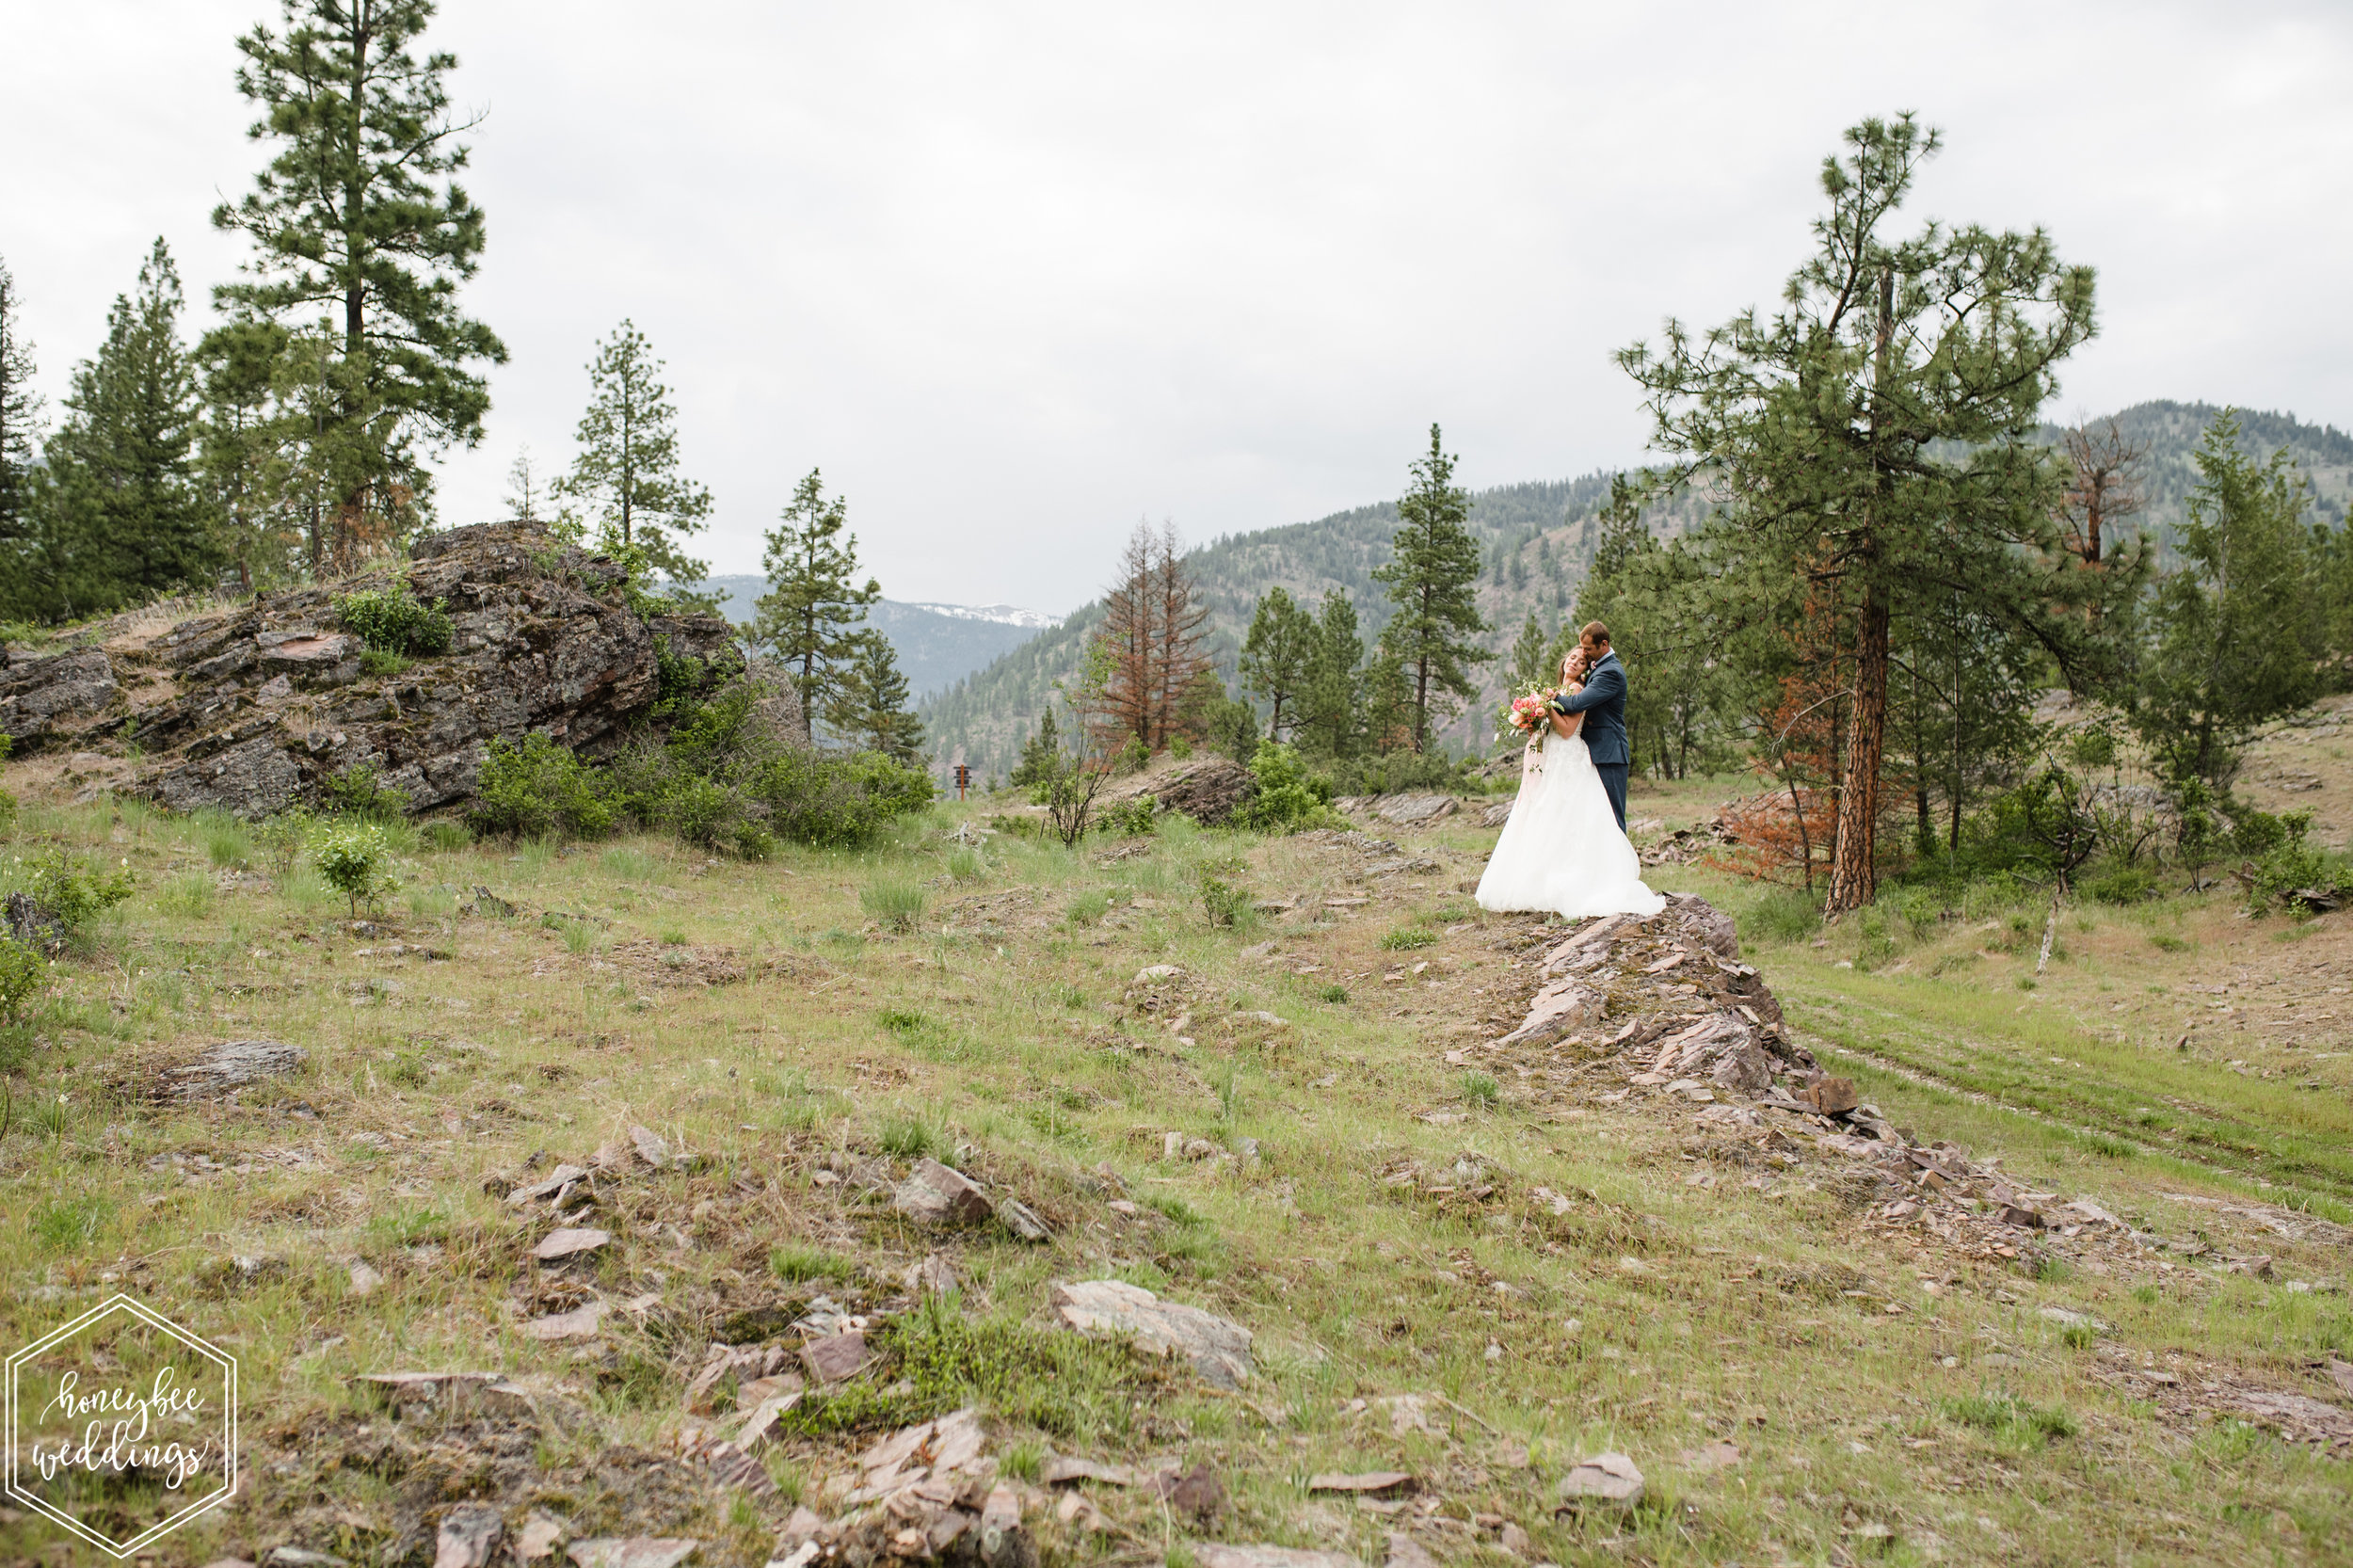 155Coral Mountain Wedding at White Raven_Honeybee Weddings_May 23, 2019-414.jpg